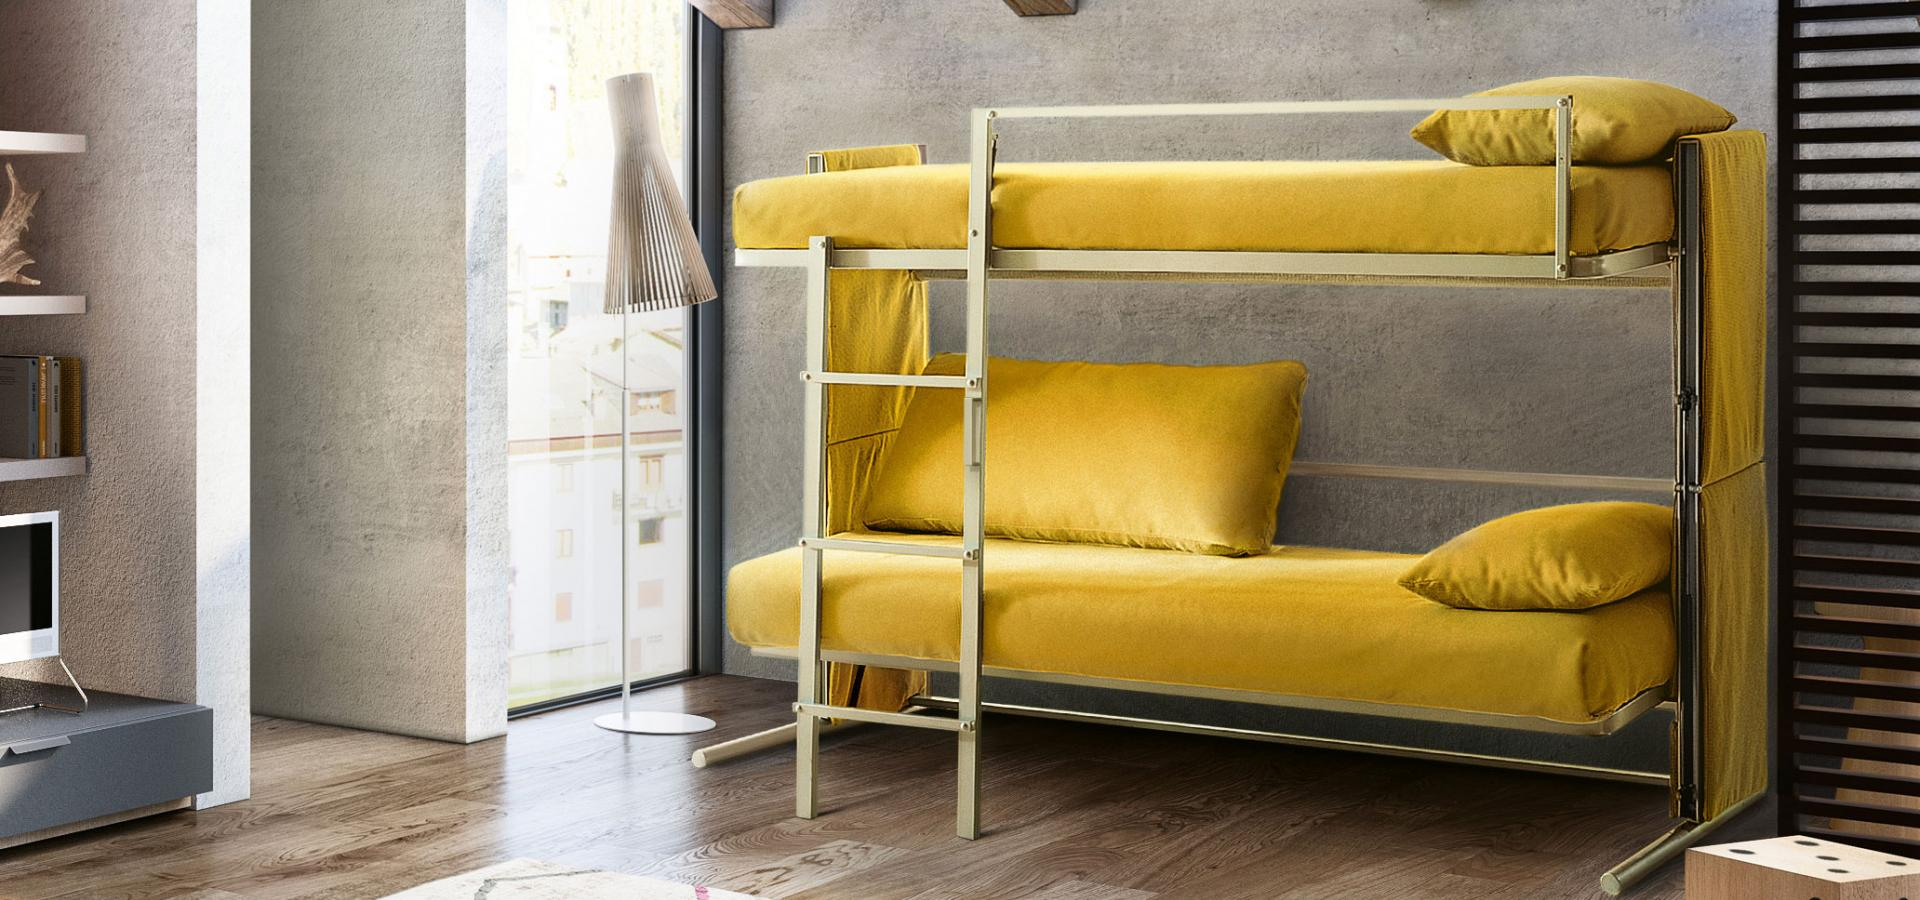 Enjoyable Practical Bunk Bed With Slatted Bed Base In One Simple Uwap Interior Chair Design Uwaporg